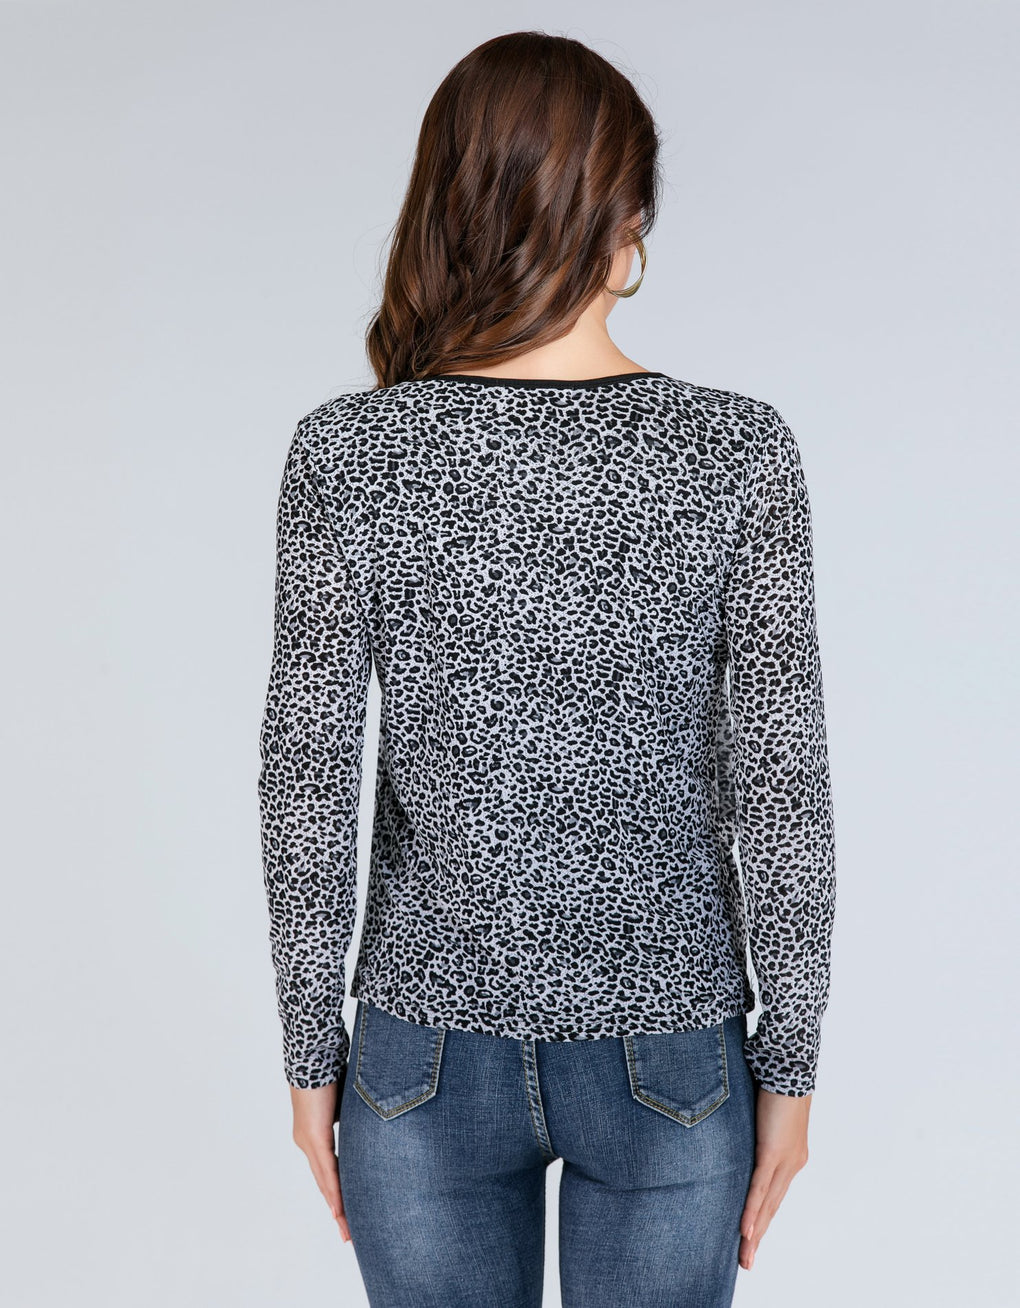 Scoop Neck Loose Cheetah Top